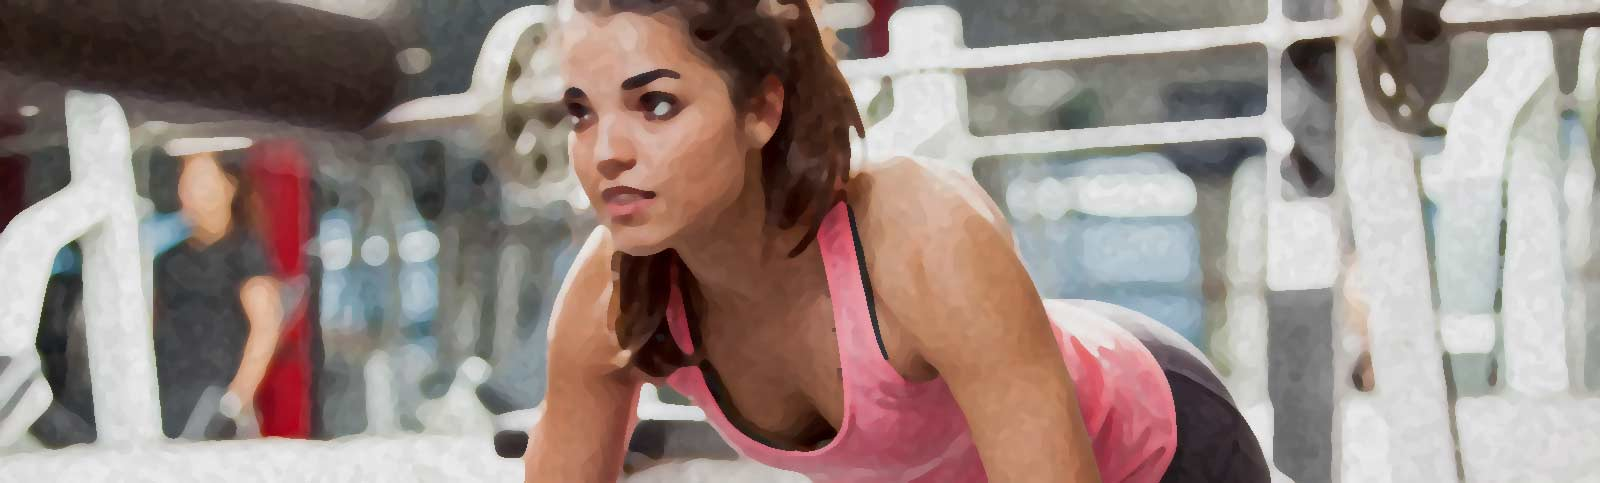 A Look at the Benefits of Undertaking Online Personal Training